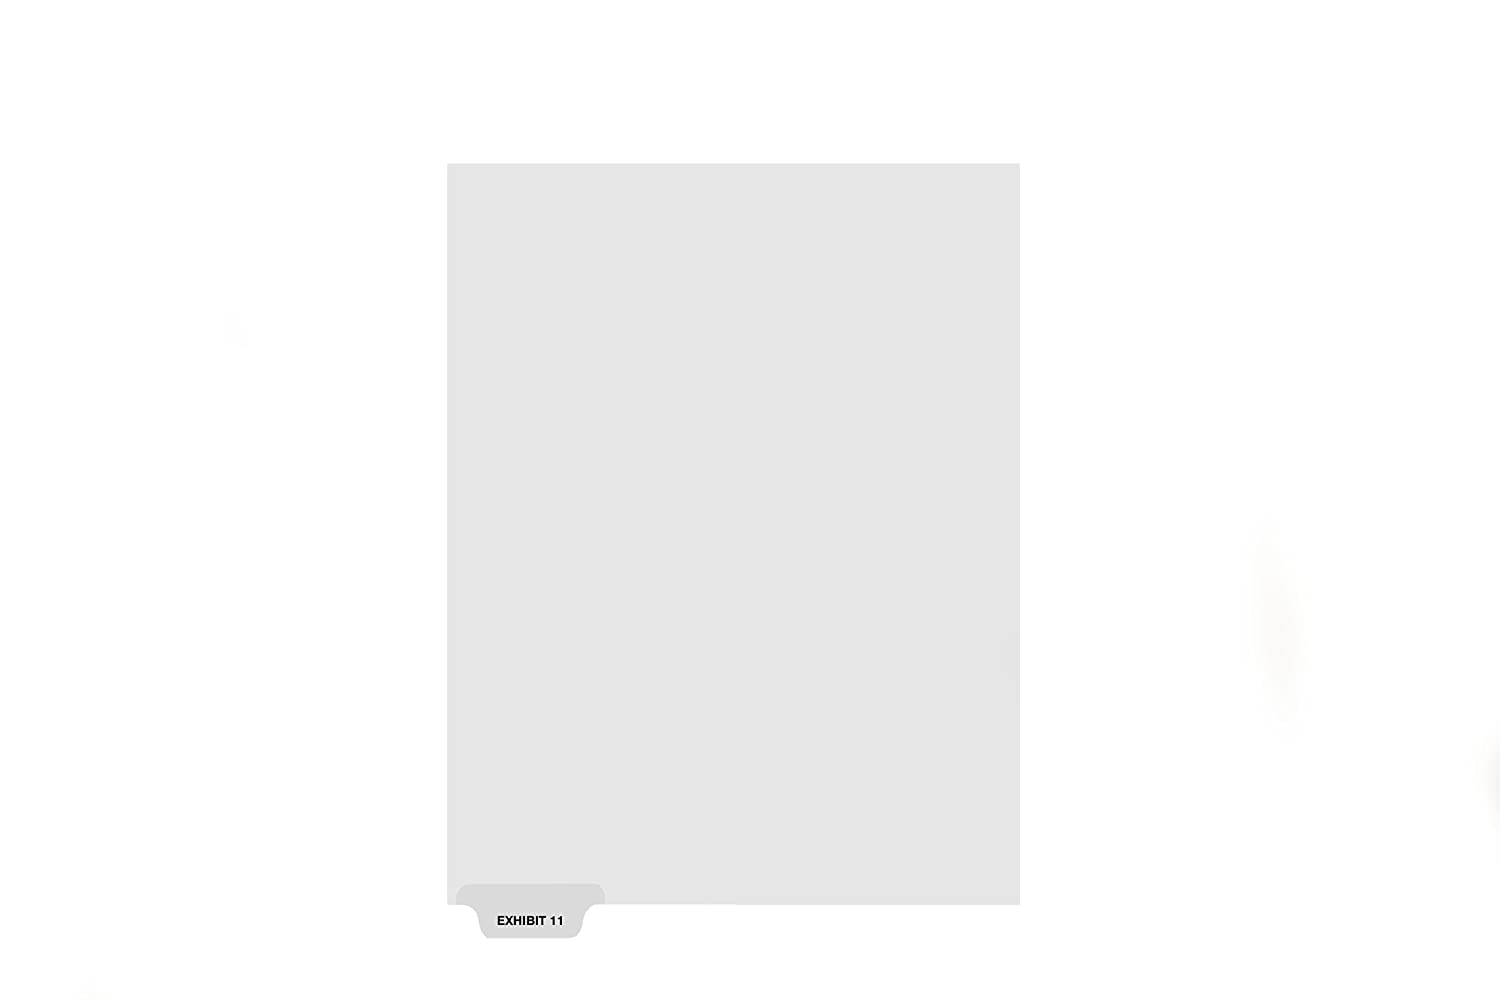 kleer-fax-letter-size-individual-exhibit-number-index-dividers-bottom-tab-15th-cut-25-sheetspack-white-exhibit-11-84151